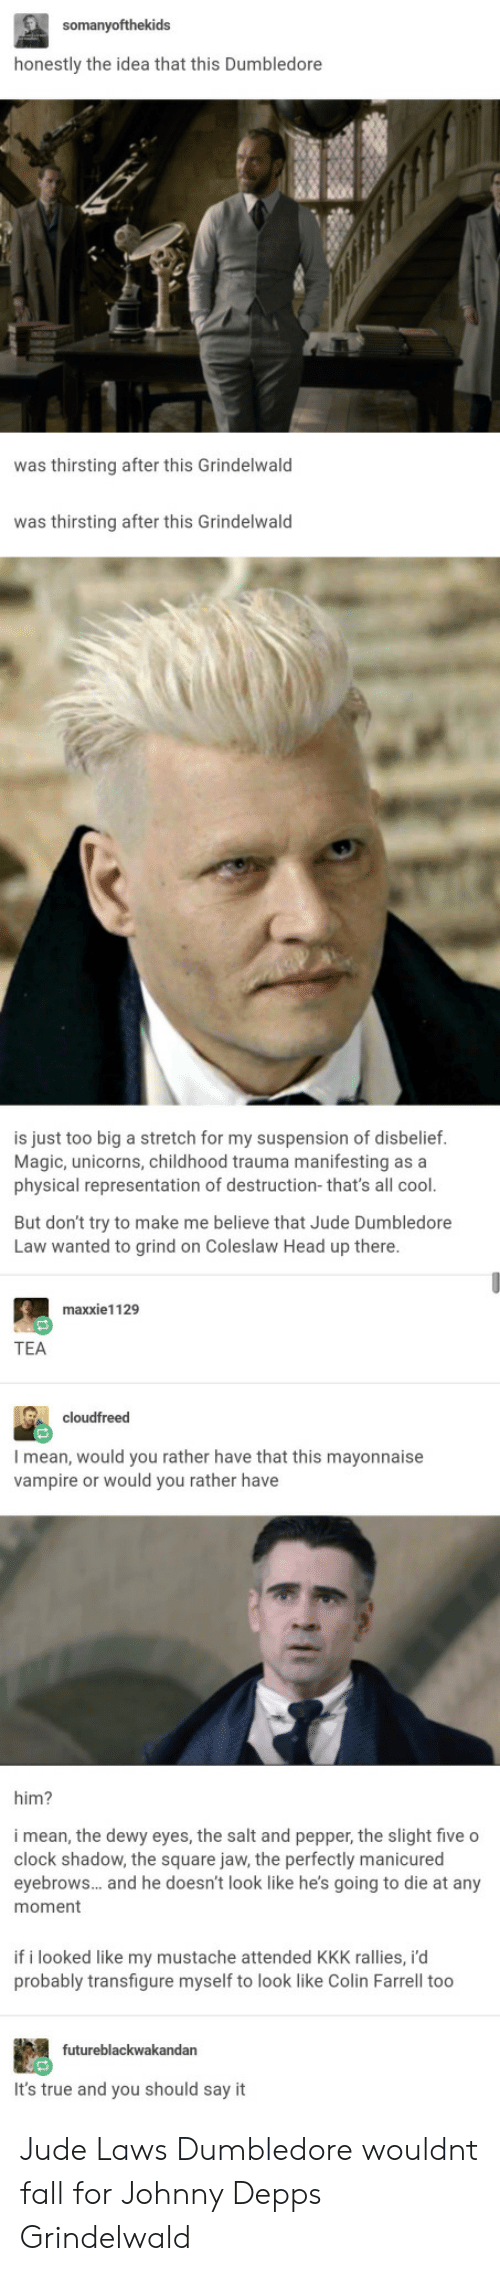 Johnny Depp: honestly the idea that this Dumbledore  was thirsting after this Grindelwald  was thirsting after this Grindelwald  is just too big a stretch for my suspension of disbelief.  Magic, unicorns, childhood trauma manifesting as a  physical representation of destruction-that's all cool.  But don't try to make me believe that Jude Dumbledore  Law wanted to grind on Coleslaw Head up there  maxxie1129  TEA  cloudfreed  I mean, would you rather have that this mayonnaise  vampire or would you rather have  him?  i mean, the dewy eyes, the salt and pepper, the slight five o  clock shadow, the square jaw, the perfectly manicured  eyebrows... and he doesn't look like he's going to die at any  moment  if i looked like my mustache attended KKK rallies, i'd  probably transfigure myself to look like Colin Farrell too  futureblackwakandan  It's true and you should say it Jude Laws Dumbledore wouldnt fall for Johnny Depps Grindelwald